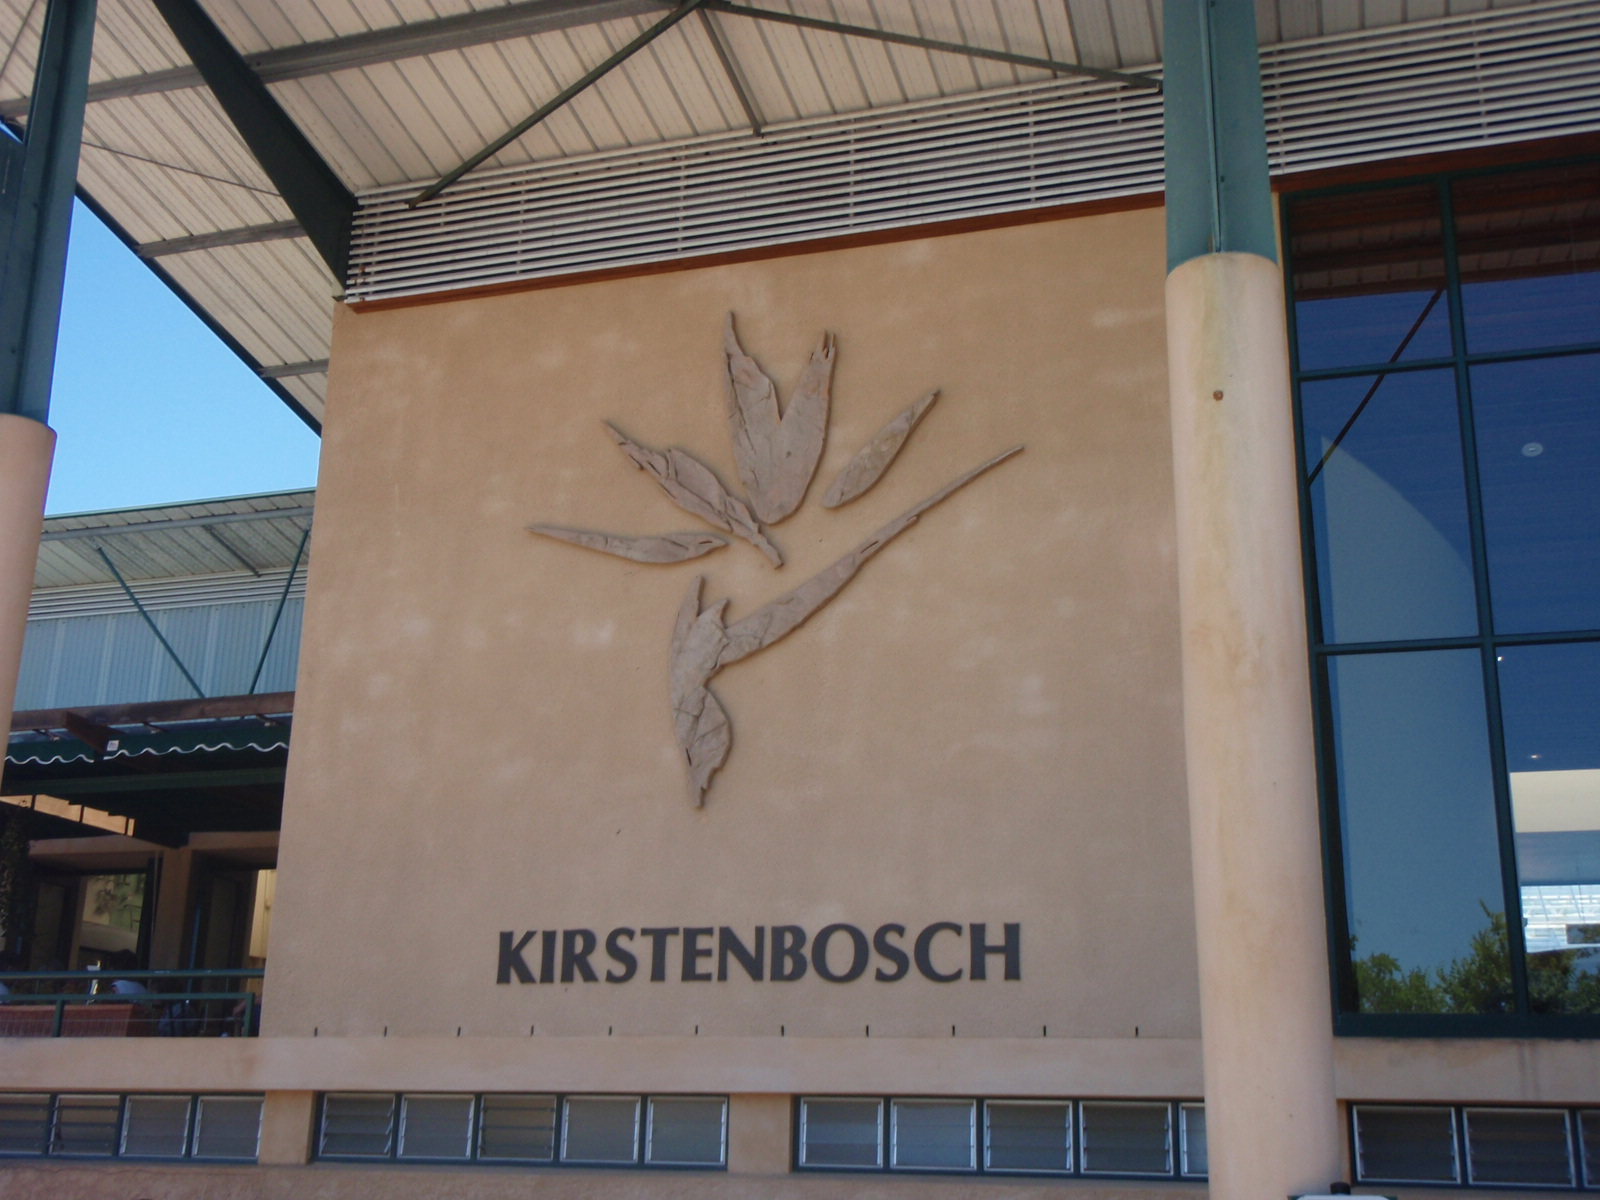 Kirstenbosch, South Africa, National Botanical Garden entrance